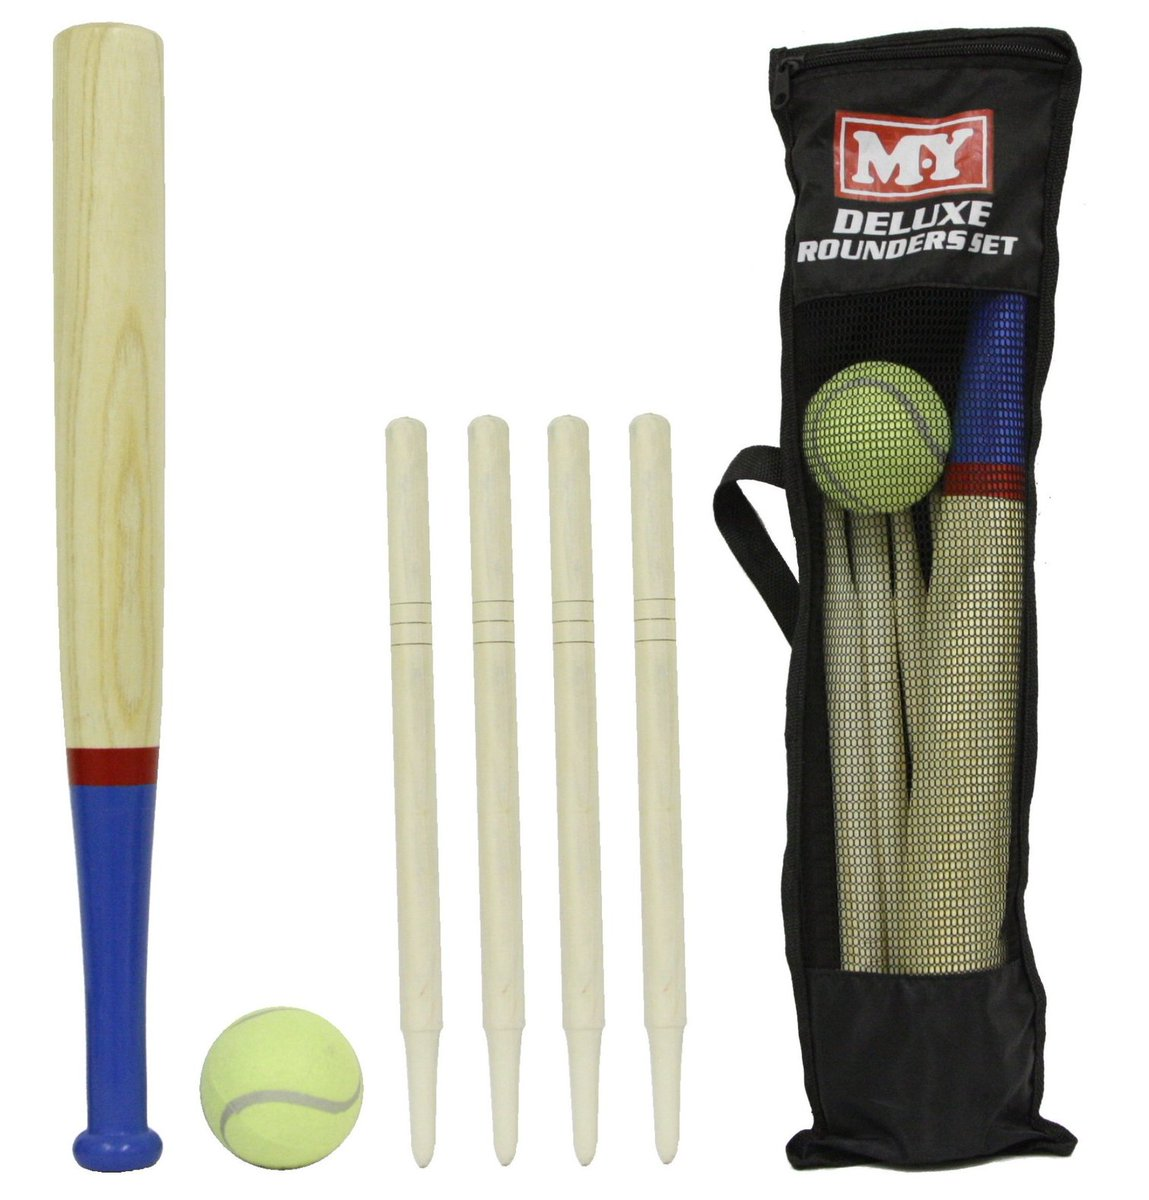 Rounders Set, perfect for family weekends!  #family #games #toys #garden #beach #park #staysafe #school #teachers